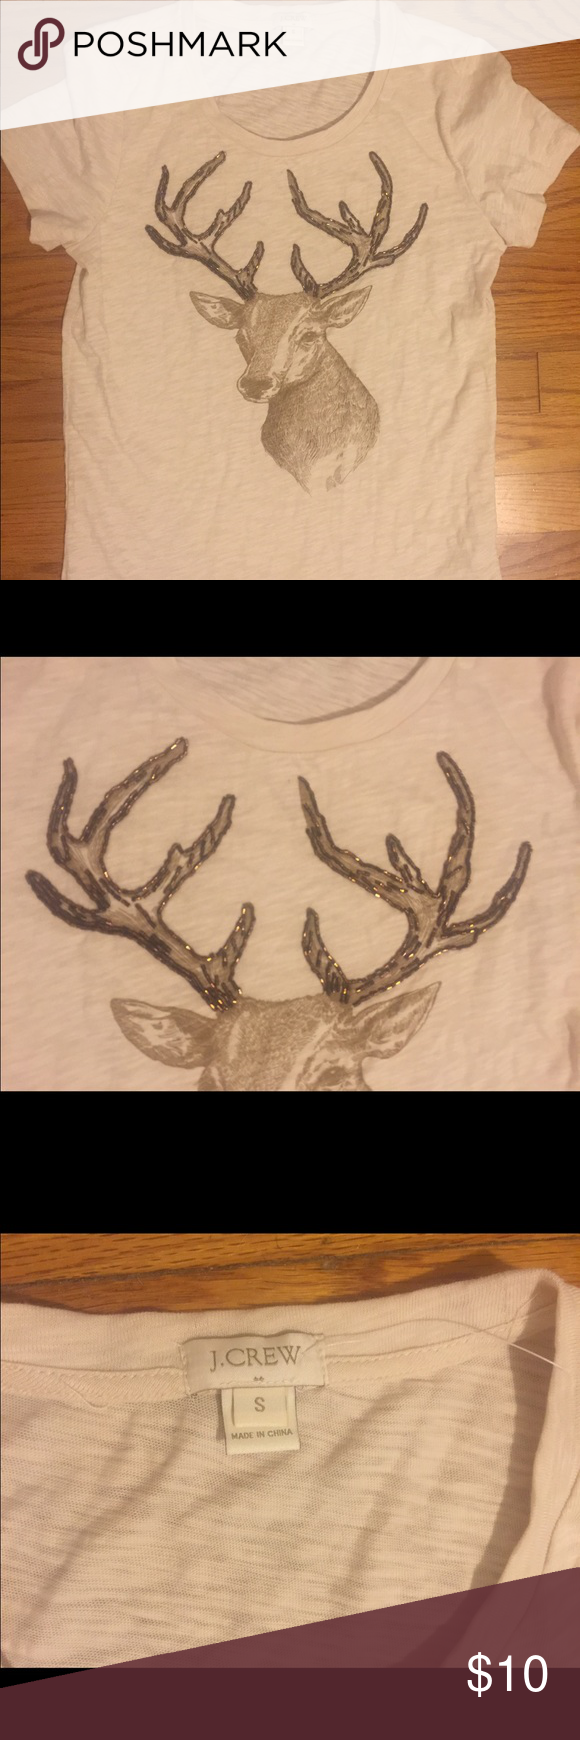 J Crew factory deer t shirt J Crew factory deer t shirt with beading. Worn once to a holiday party. No trades. Make an offer J. Crew Factory Tops Tees - Short Sleeve